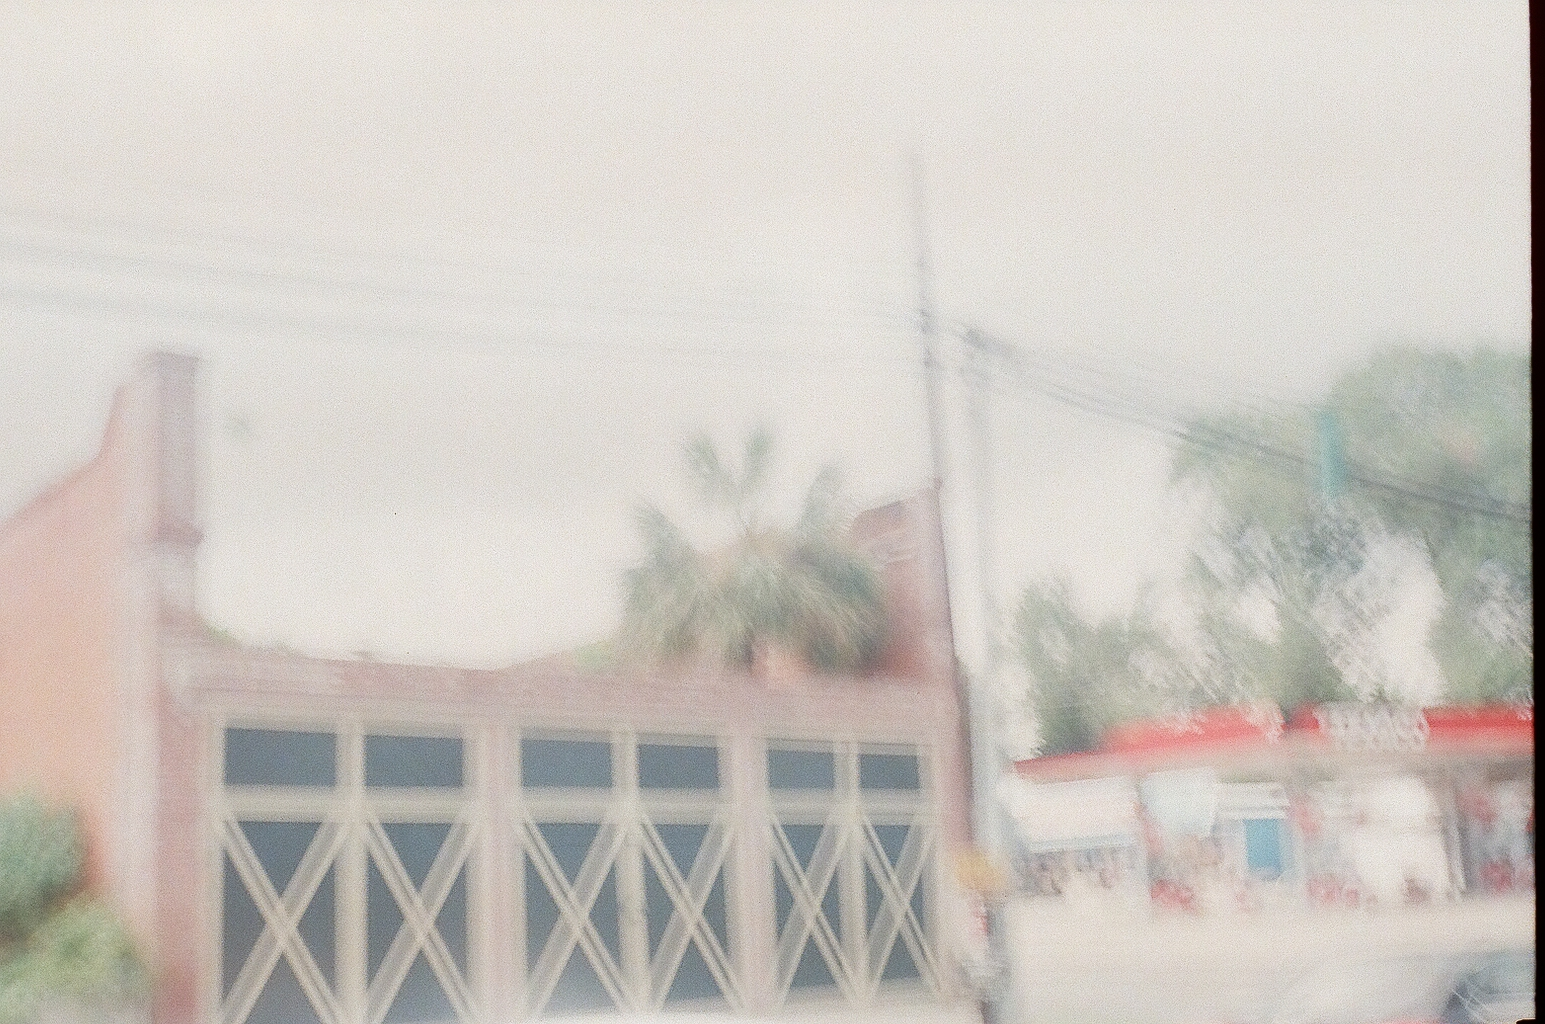 An overexposed, blurry photo of a storefront with a palm tree coming out of it